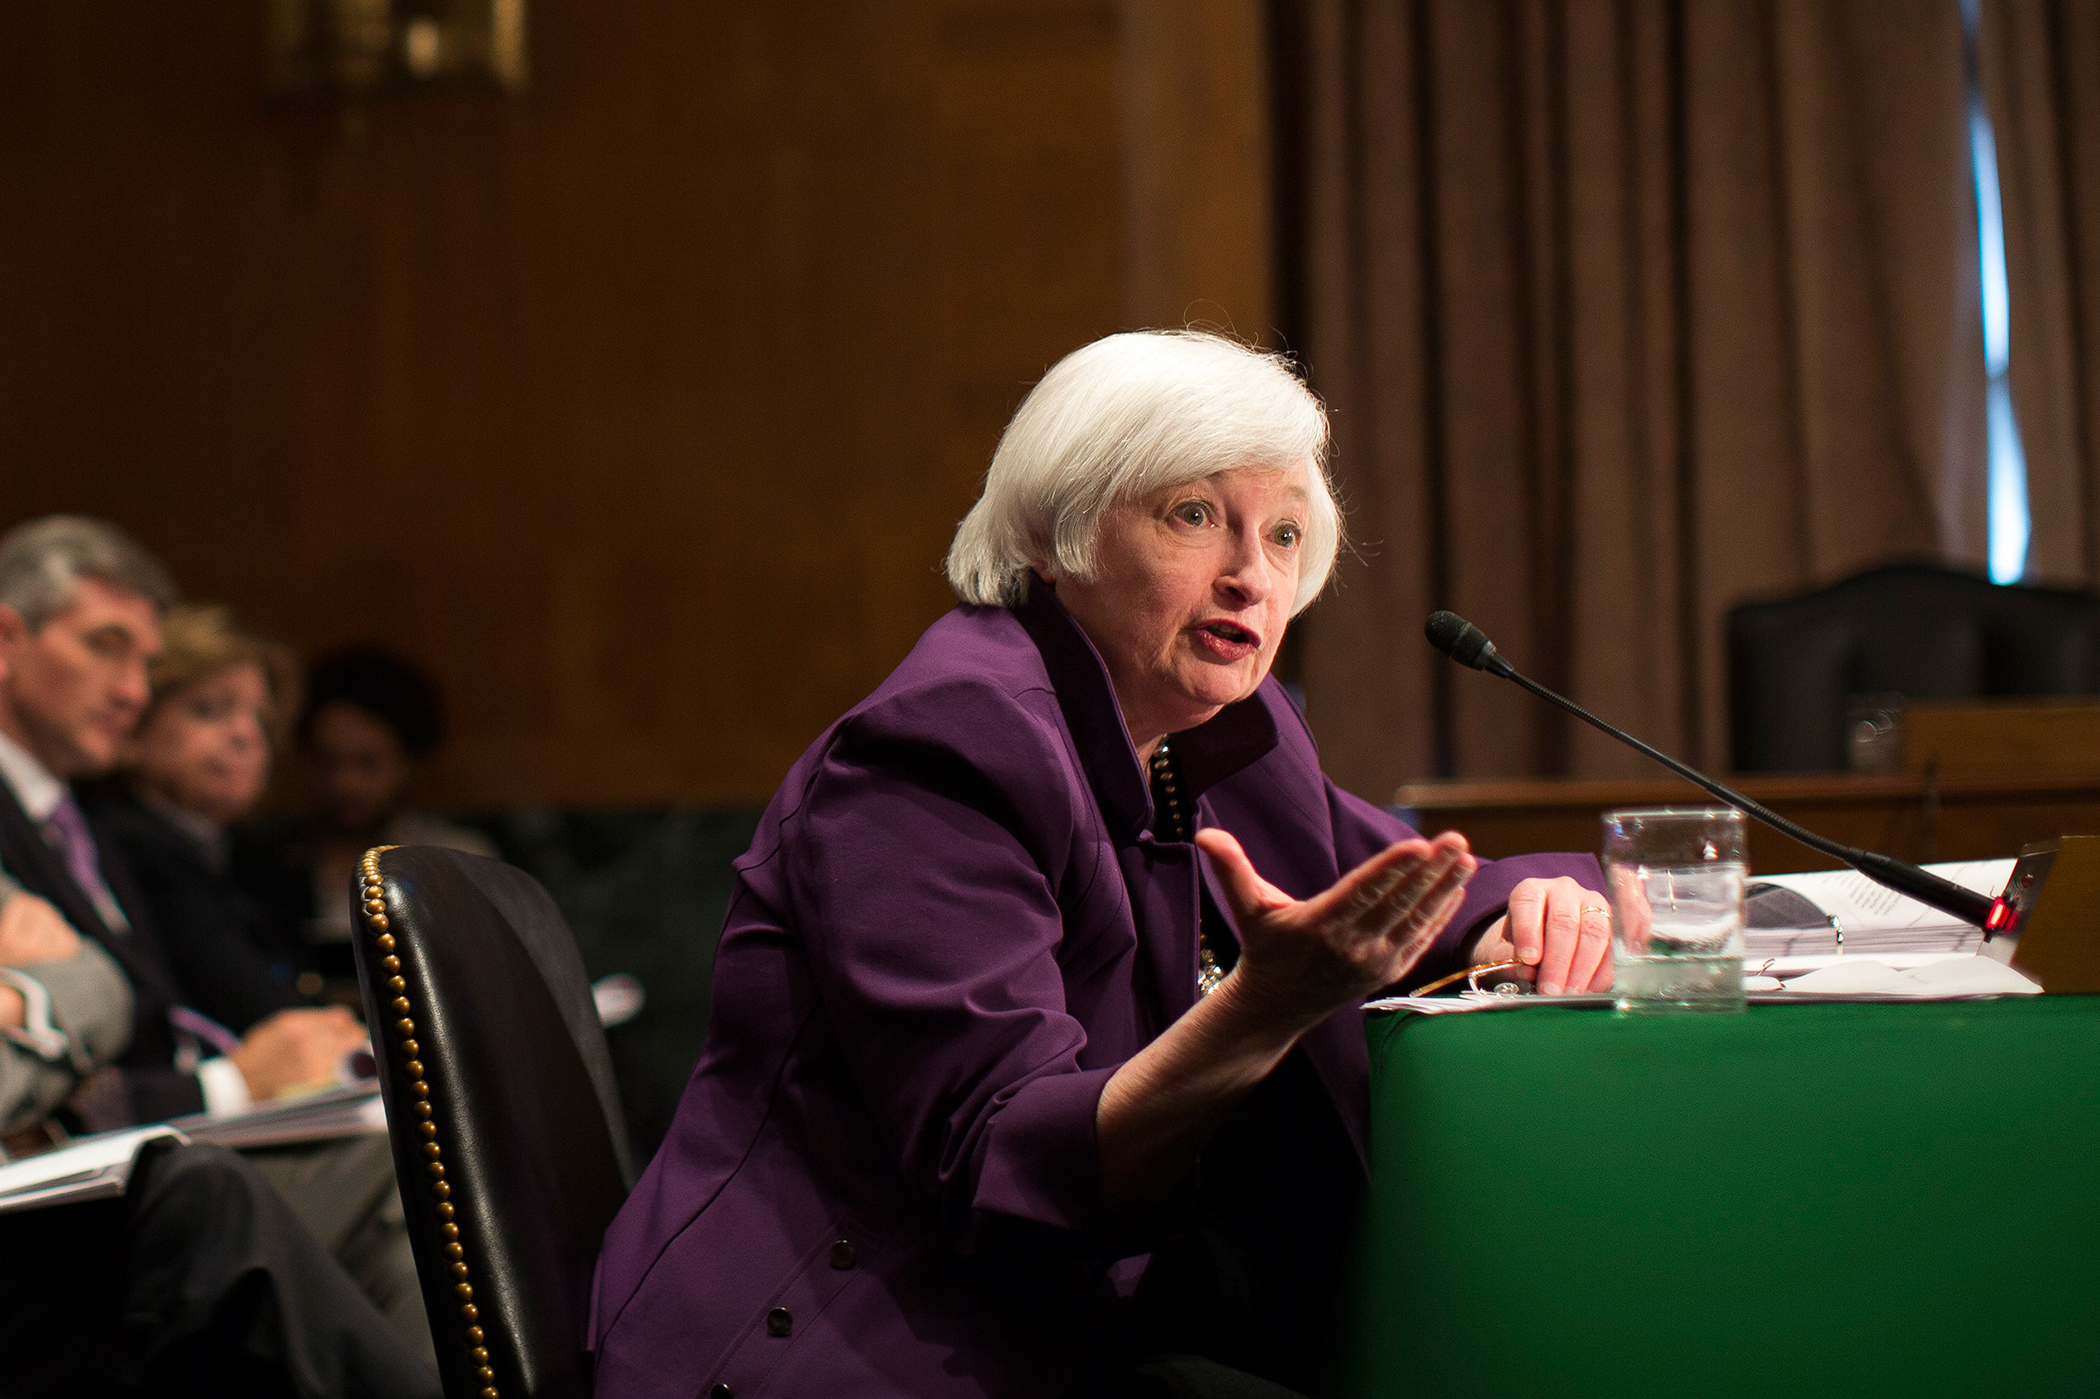 Janet Yellen, chair of the U.S. Federal Reserve, speaks during her semiannual report on the economy to the Senate Banking Committee in Washington, D.C. on  July 16, 2015.